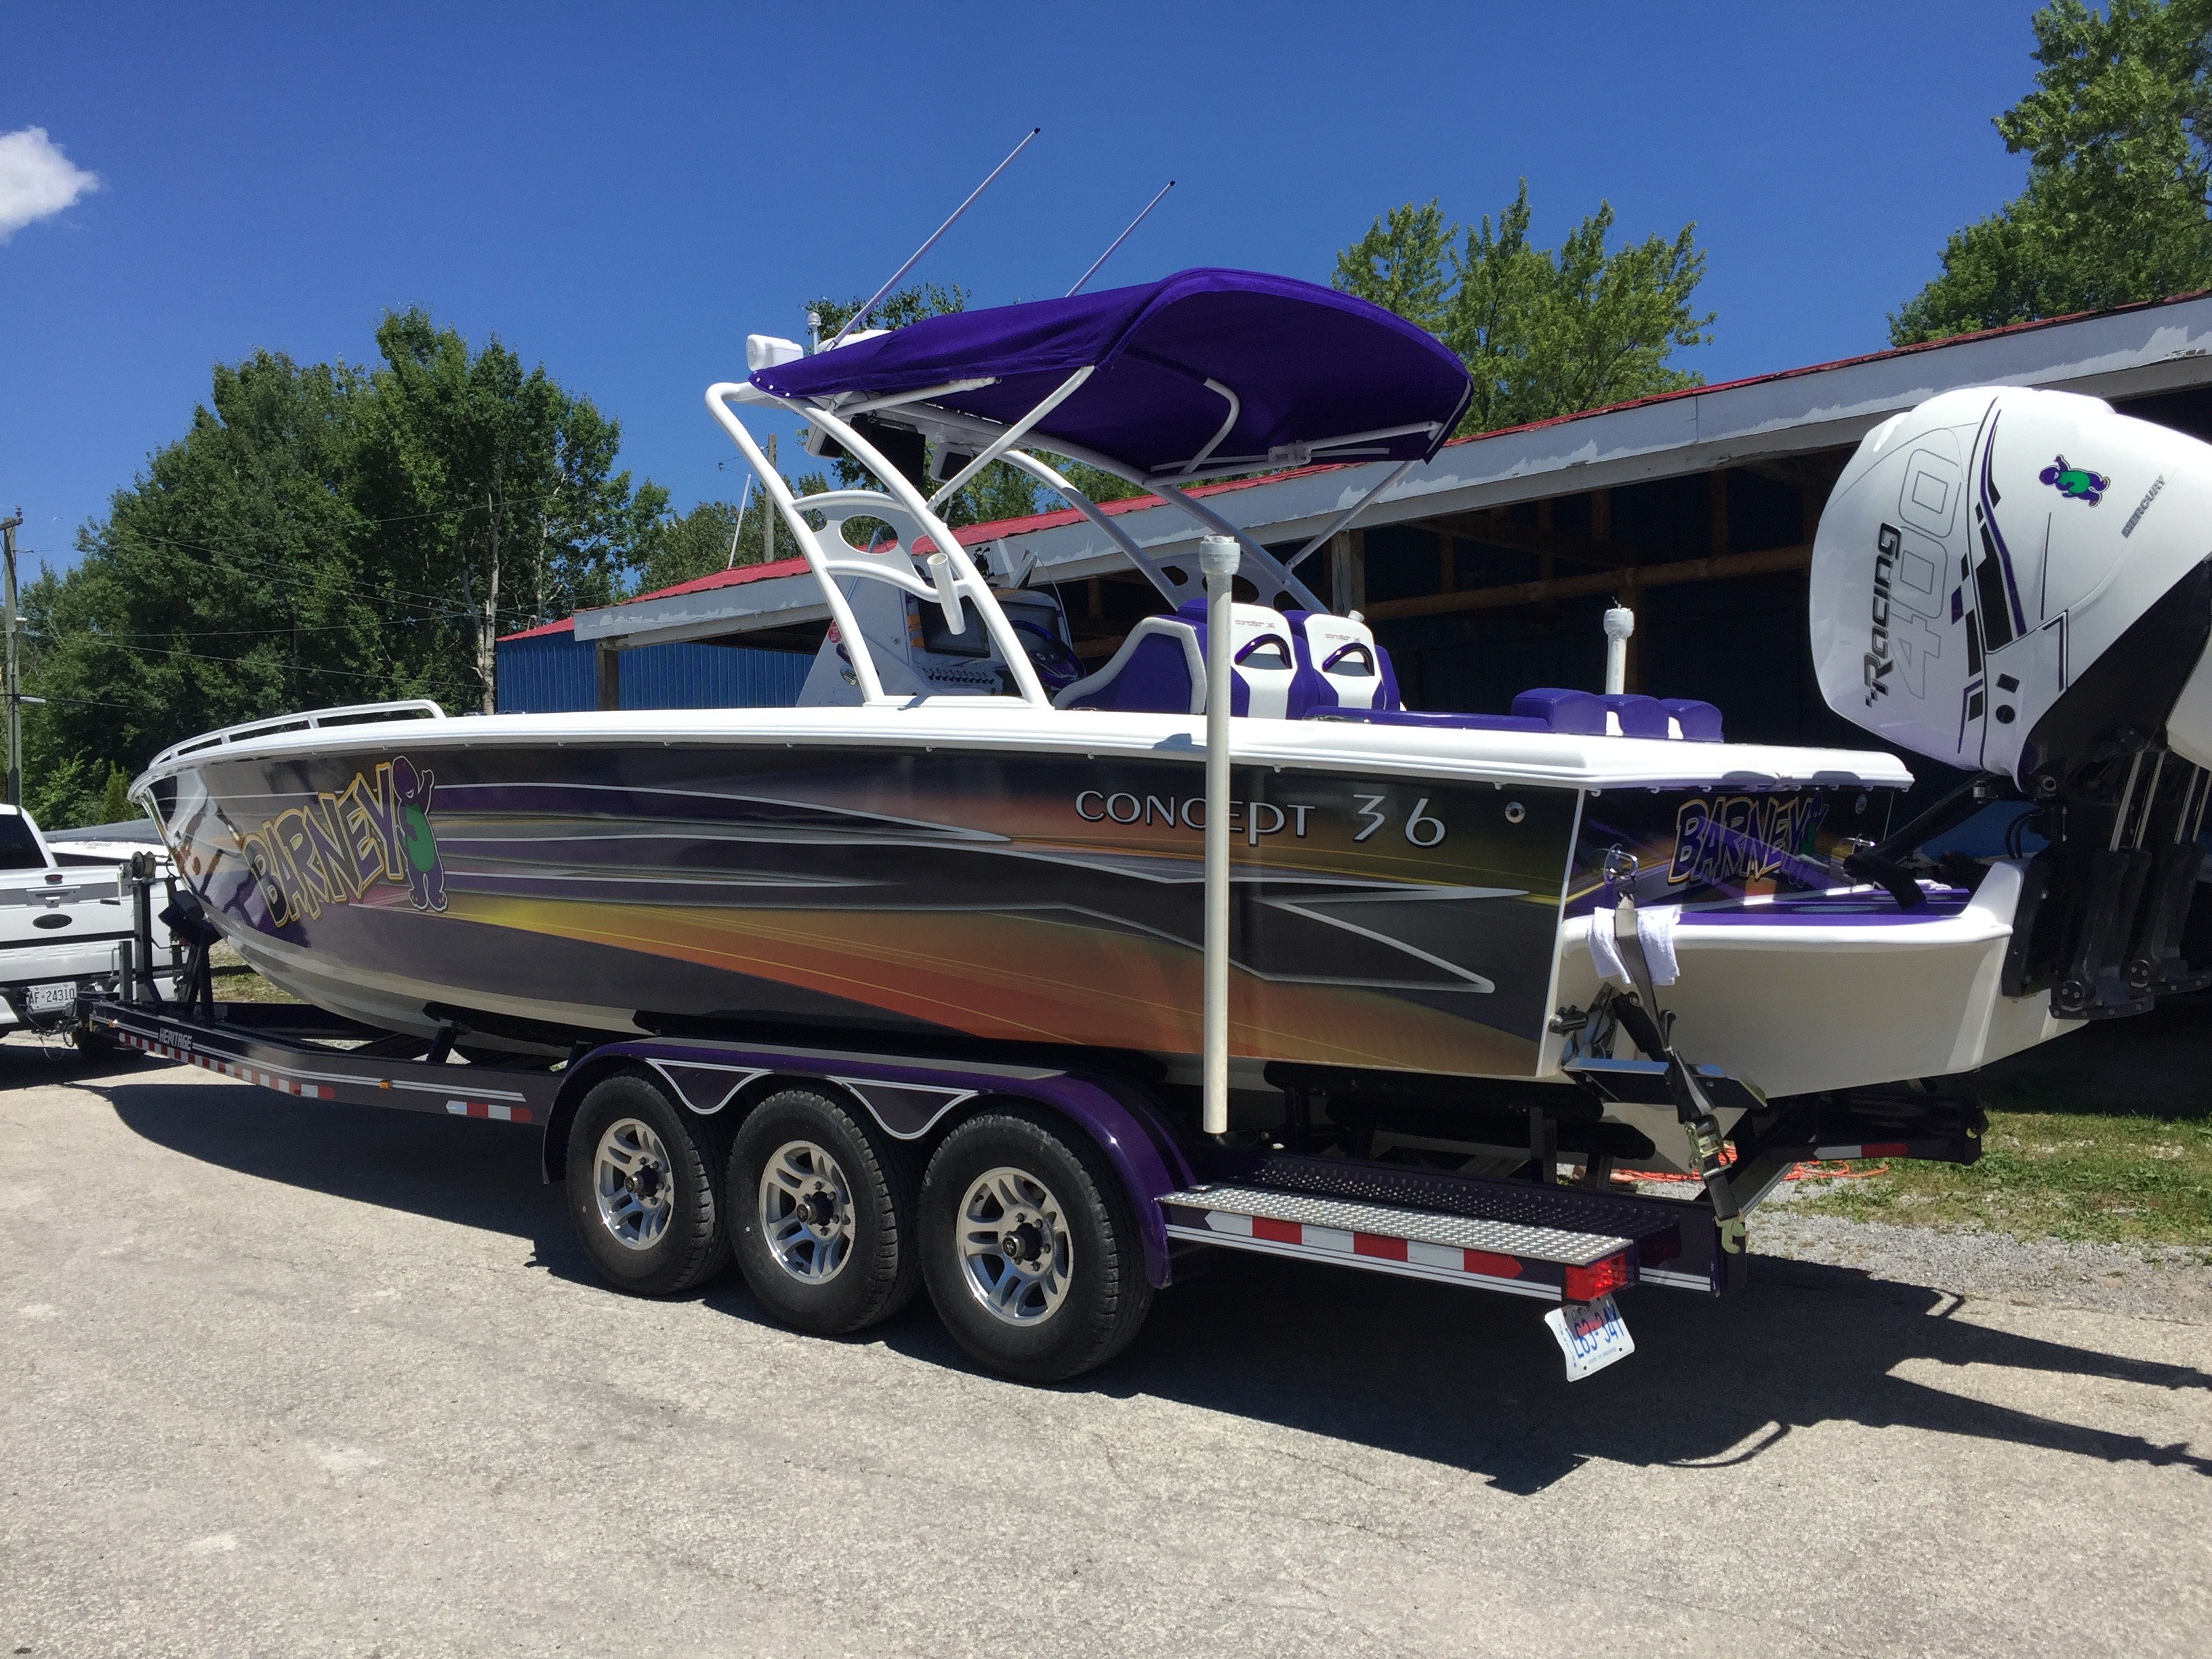 The Barney boat is back!